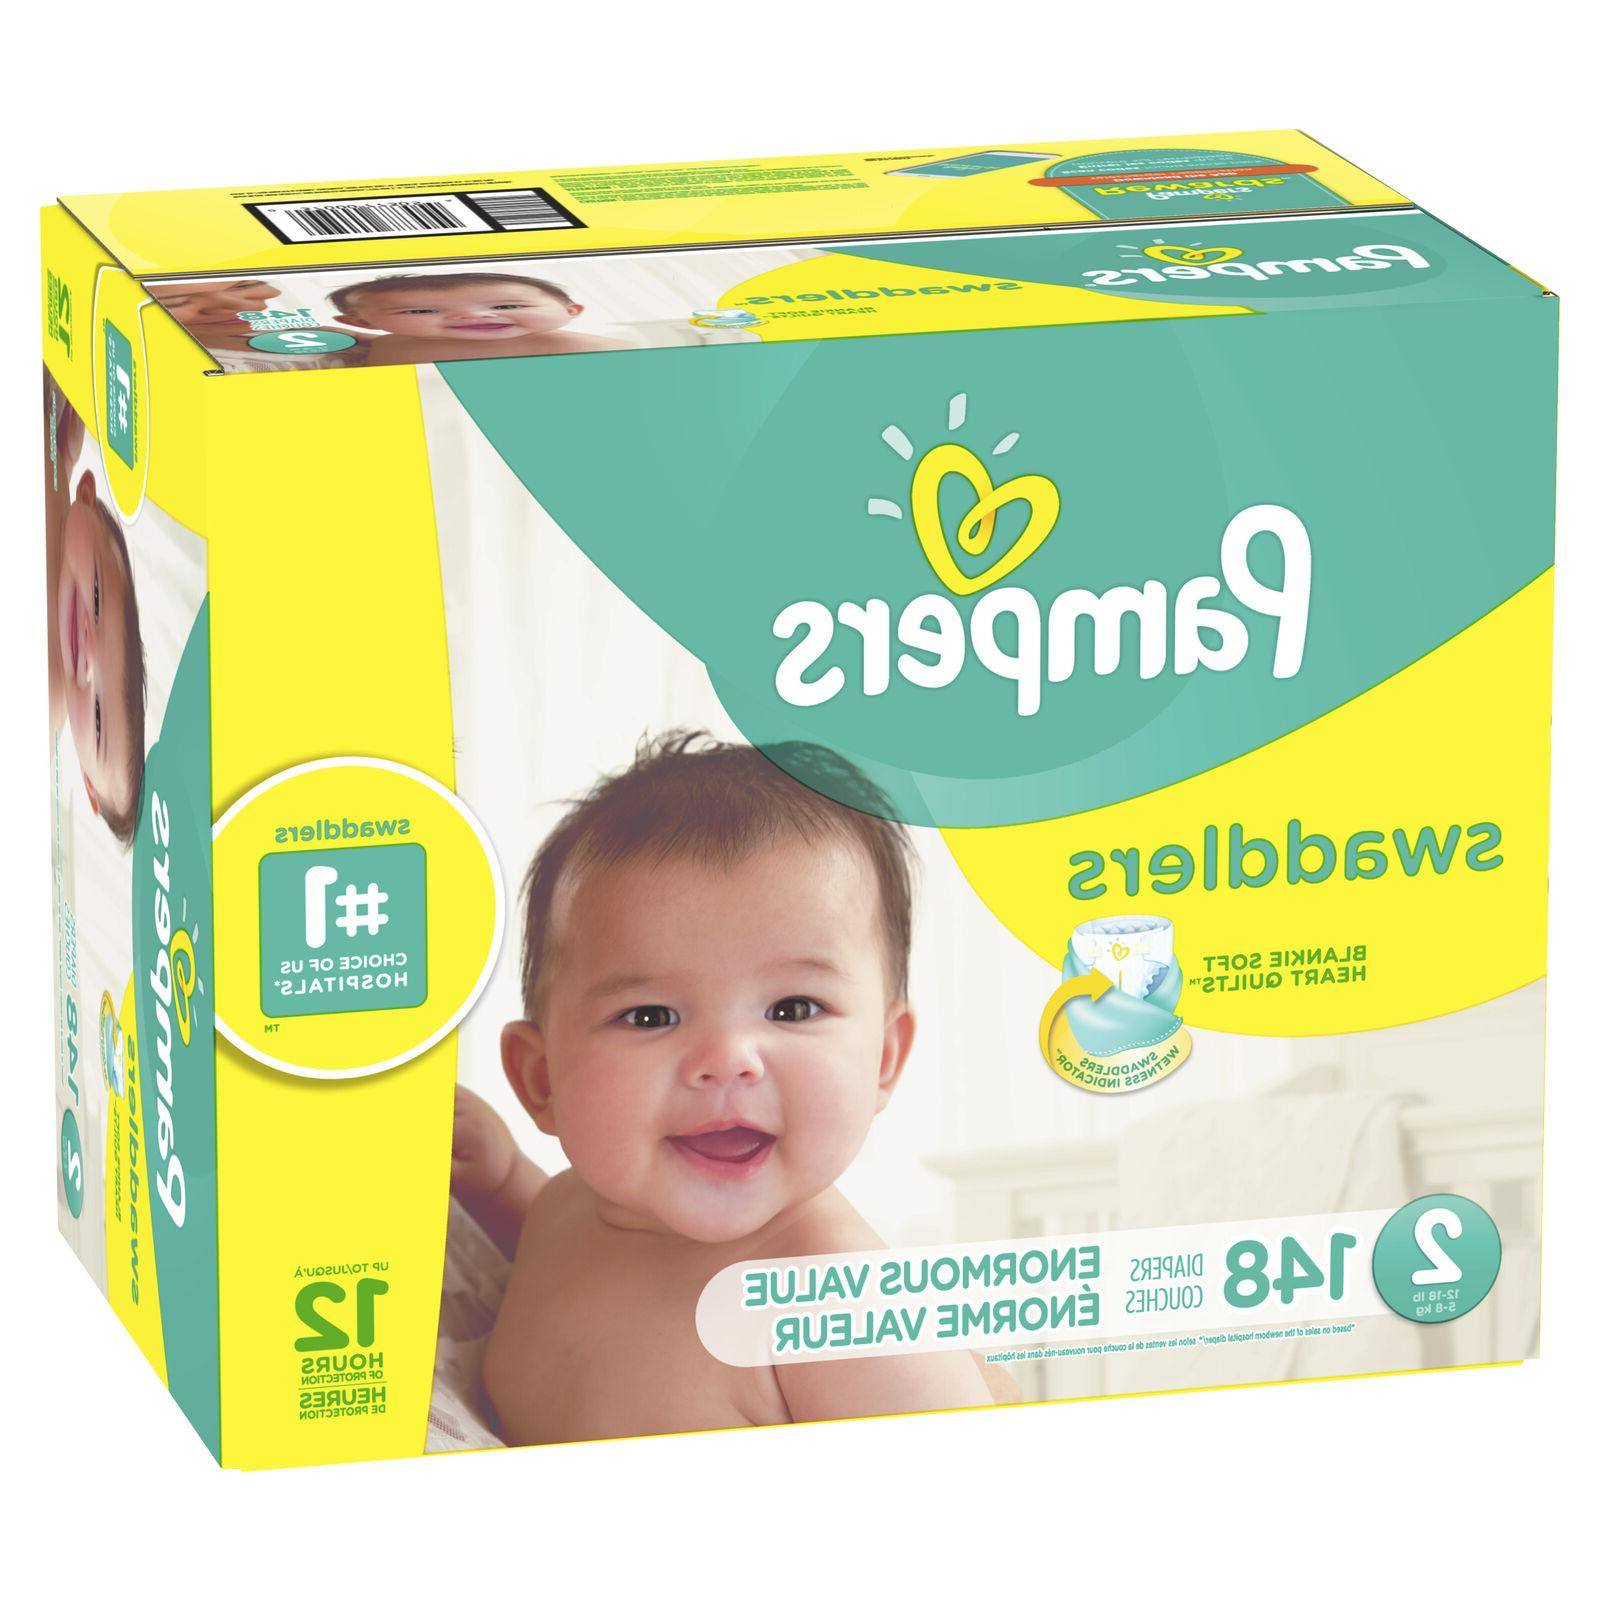 swaddlers diapers size 2 148 count